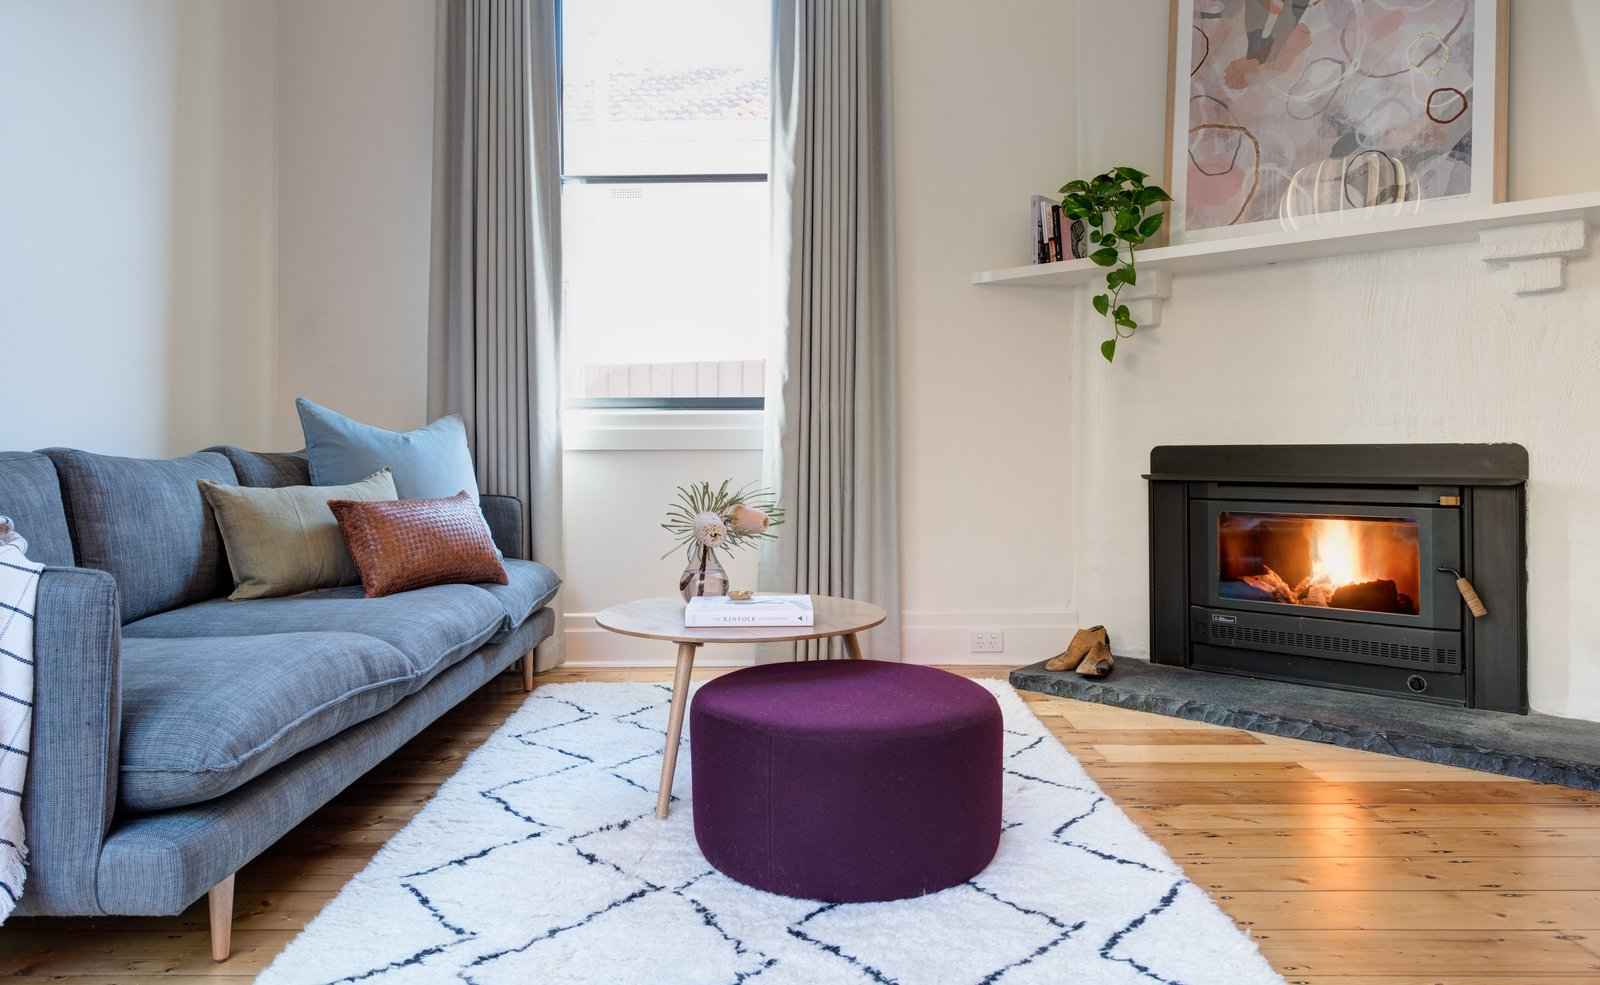 Tetris Extension living room and fireplace